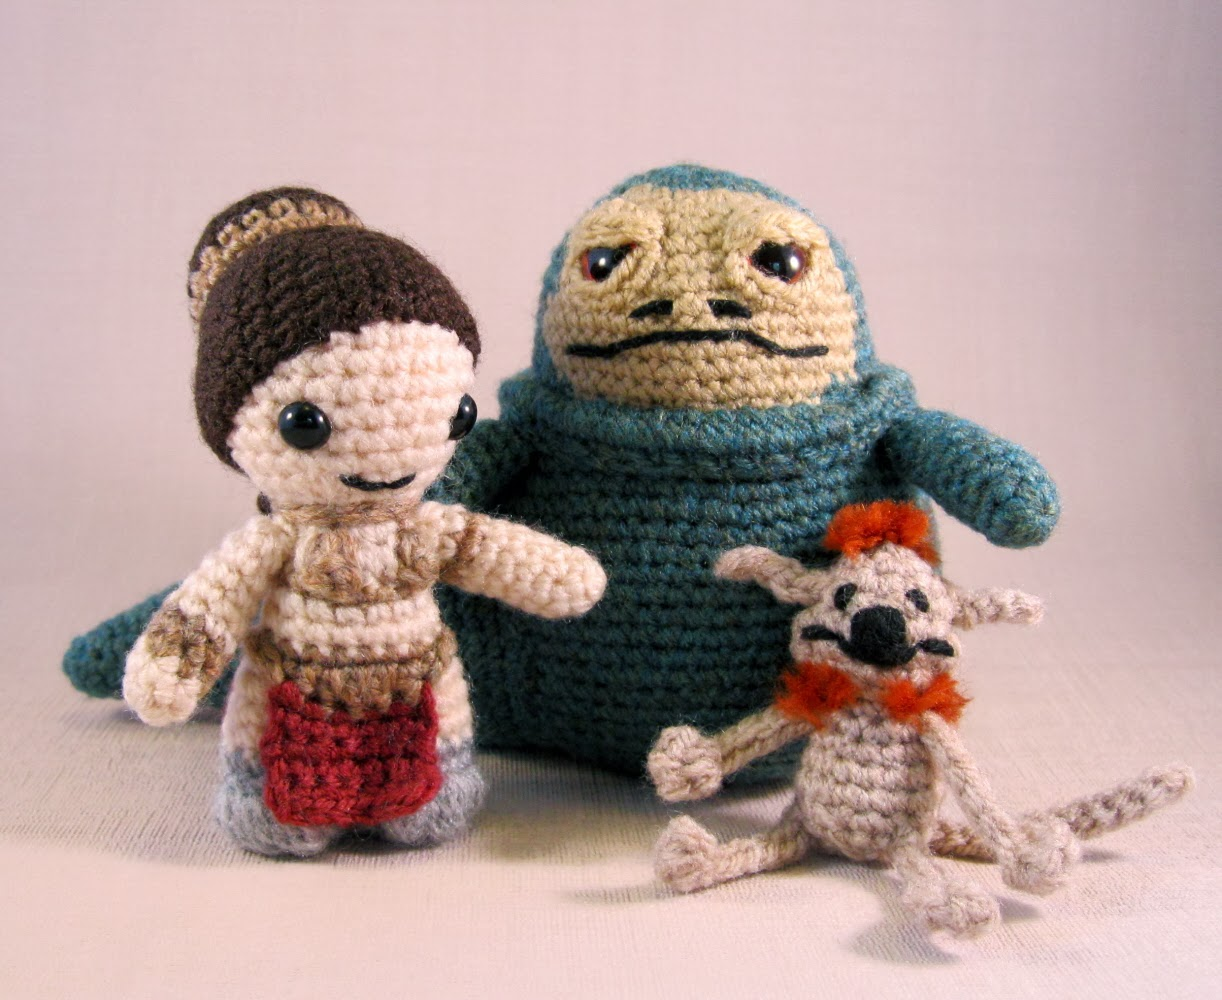 Amigurumi Star Wars Patterns : Lucyravenscar crochet creatures: jabba's palace